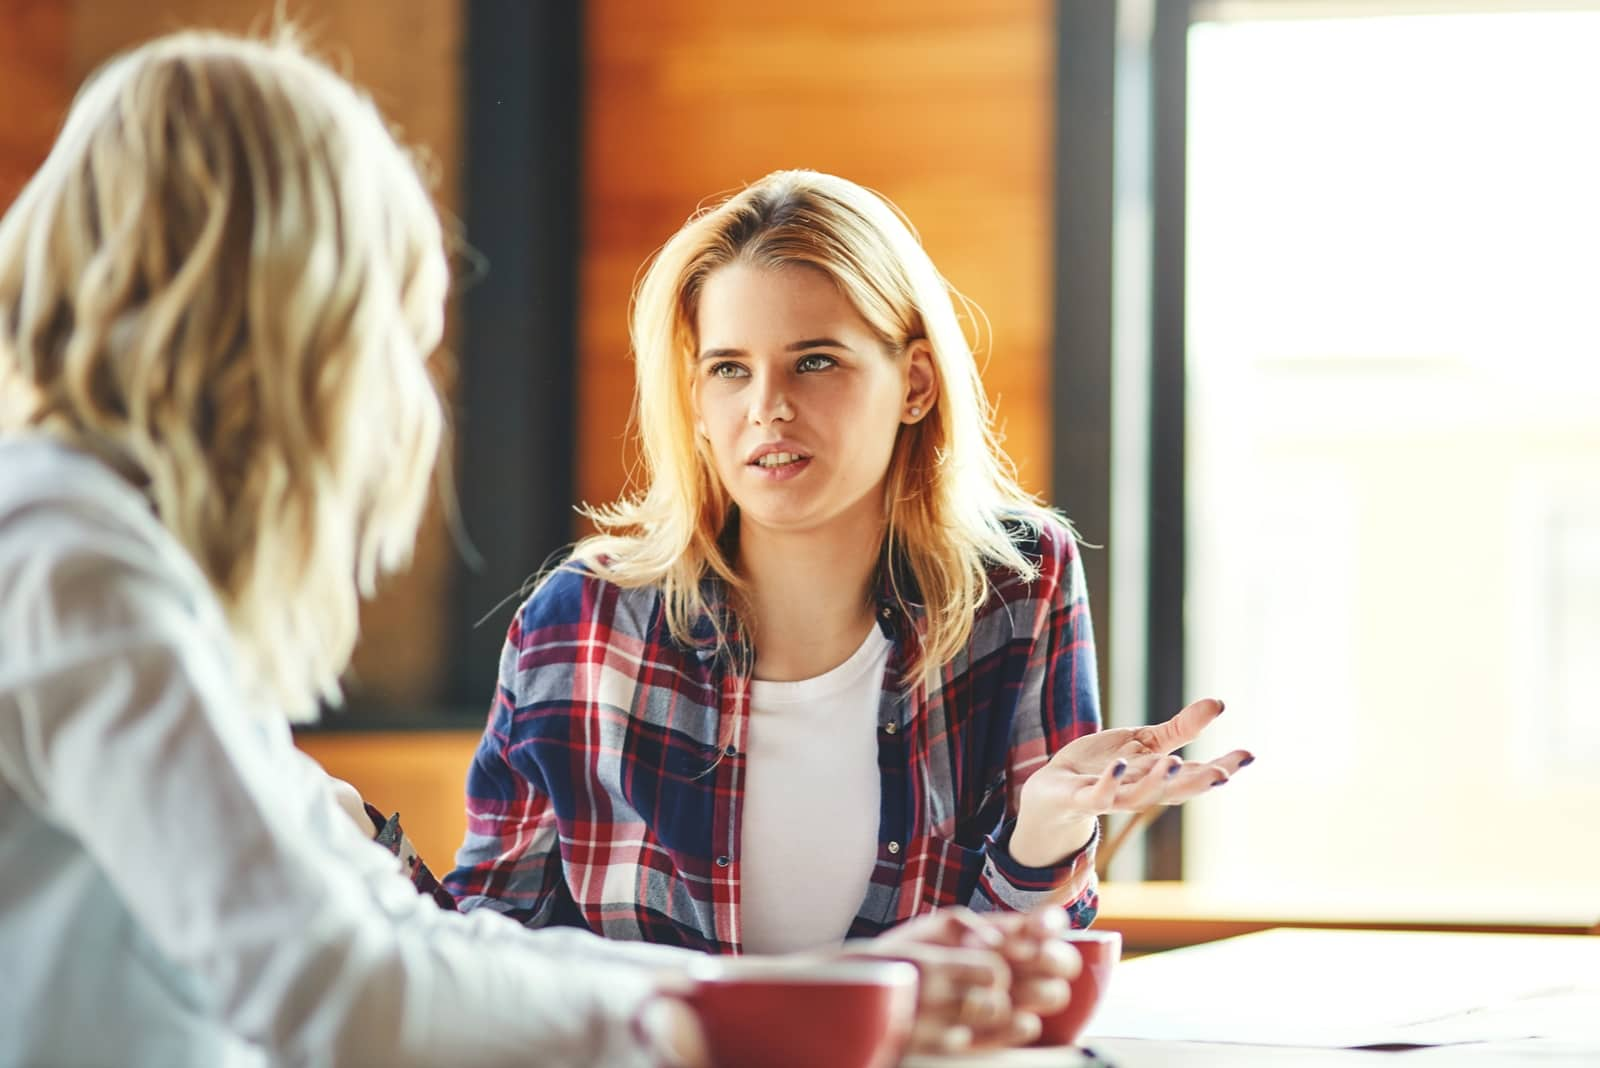 woman talking to woman while sitting at table